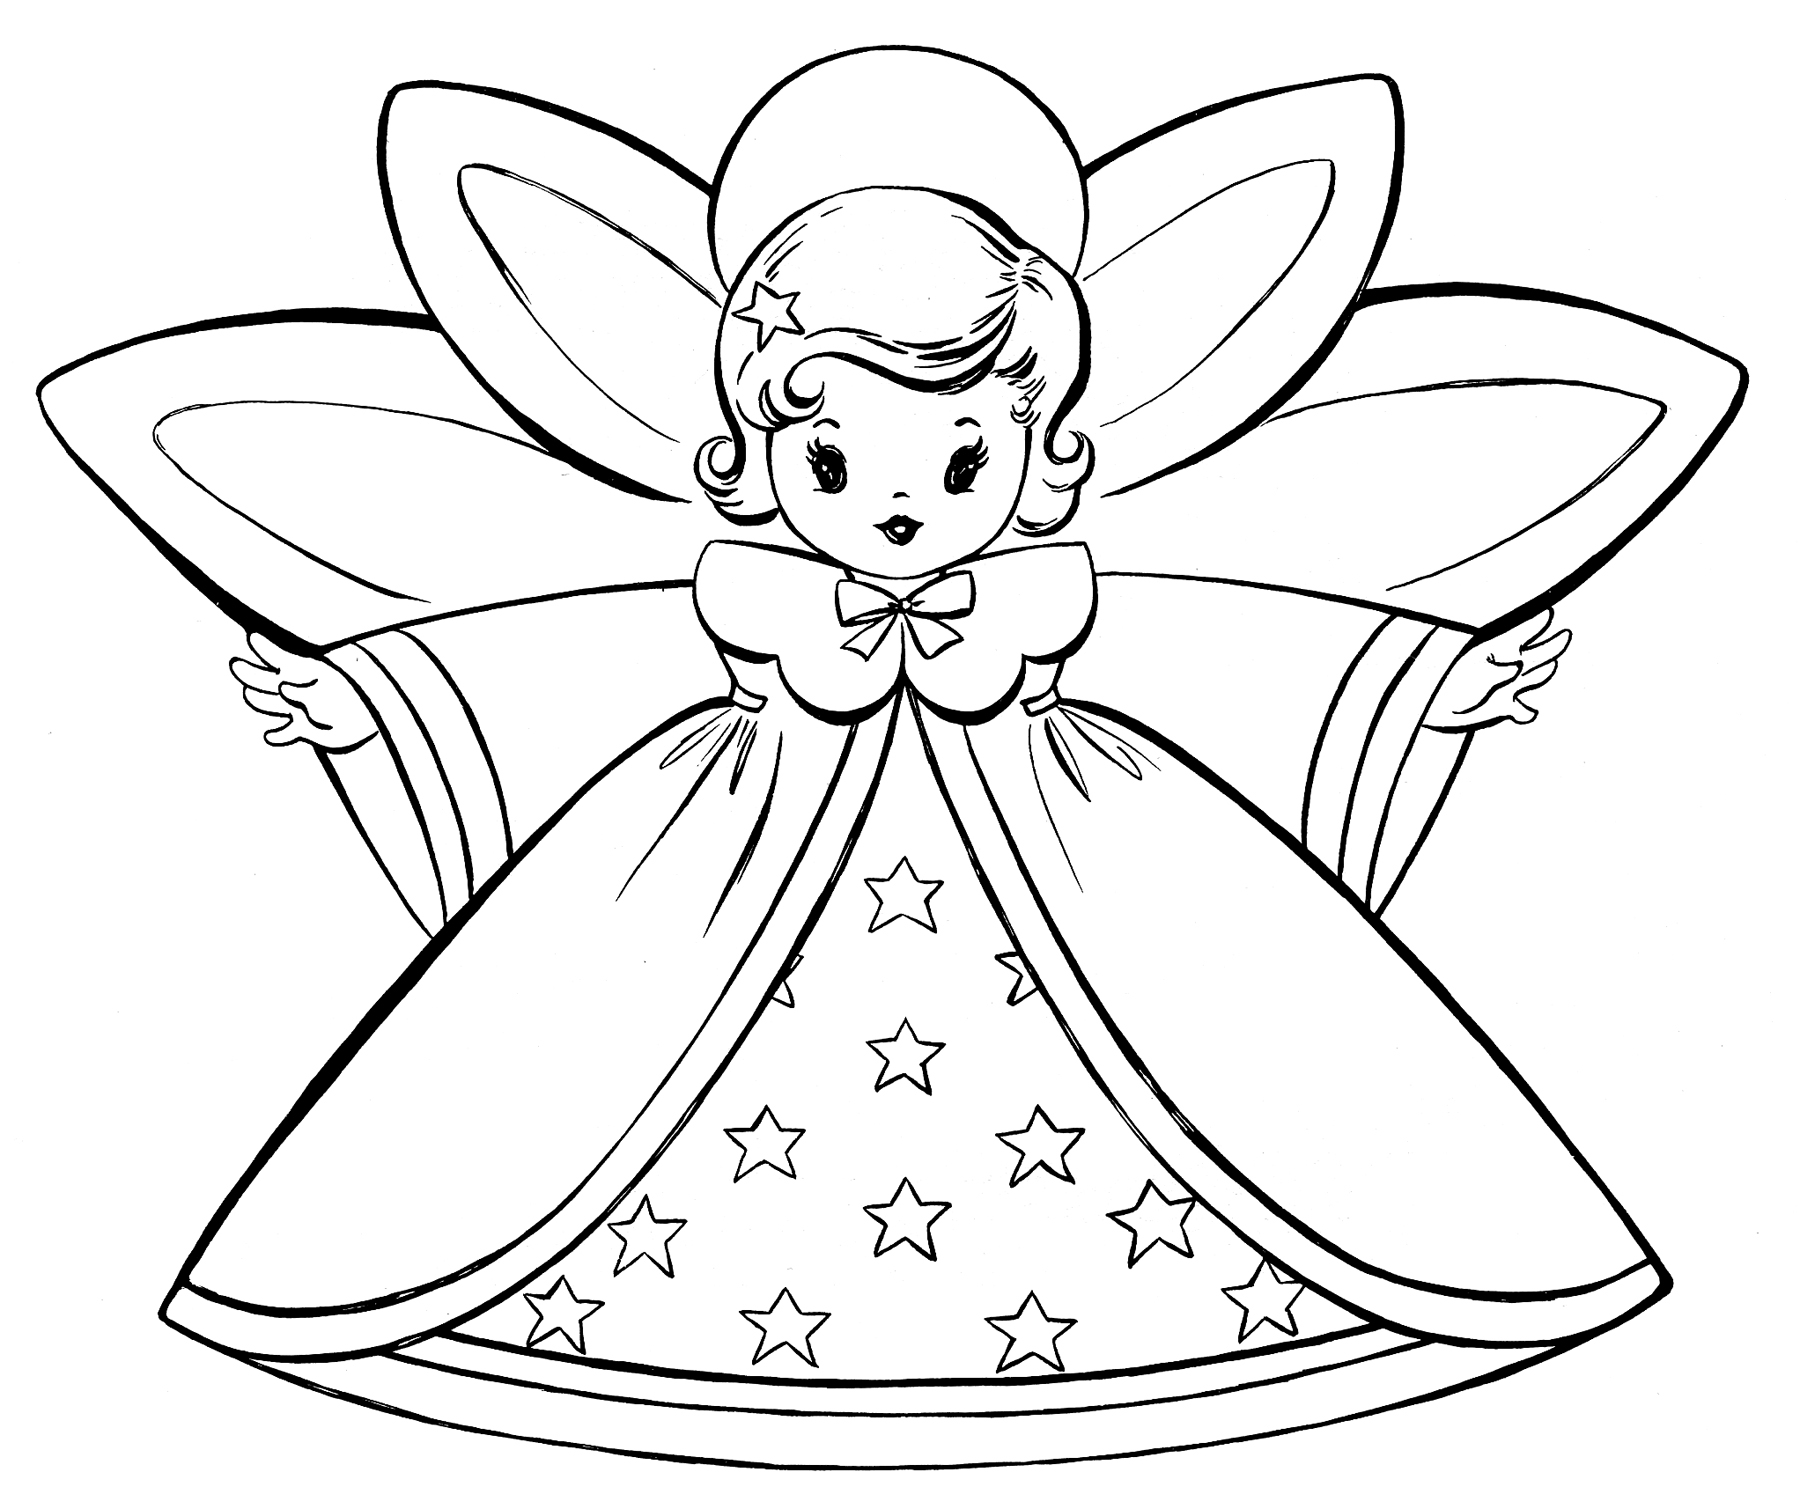 xmas printable coloring pages christmas coloring pages for adults best coloring pages printable xmas pages coloring